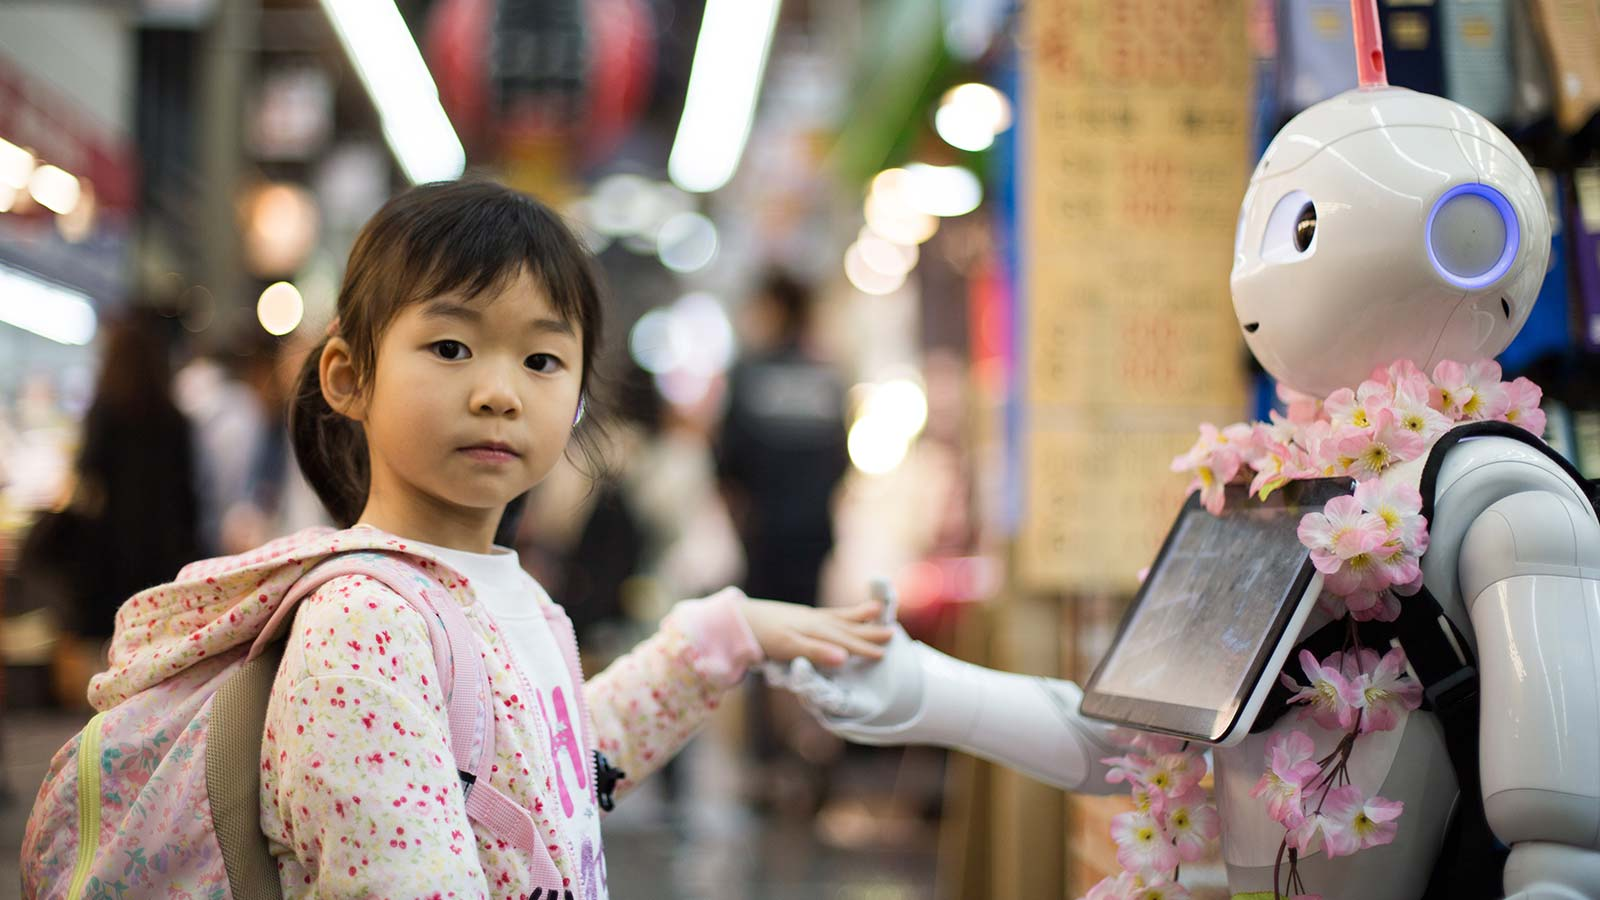 The Impact of AI on Education by Behavioral Signals